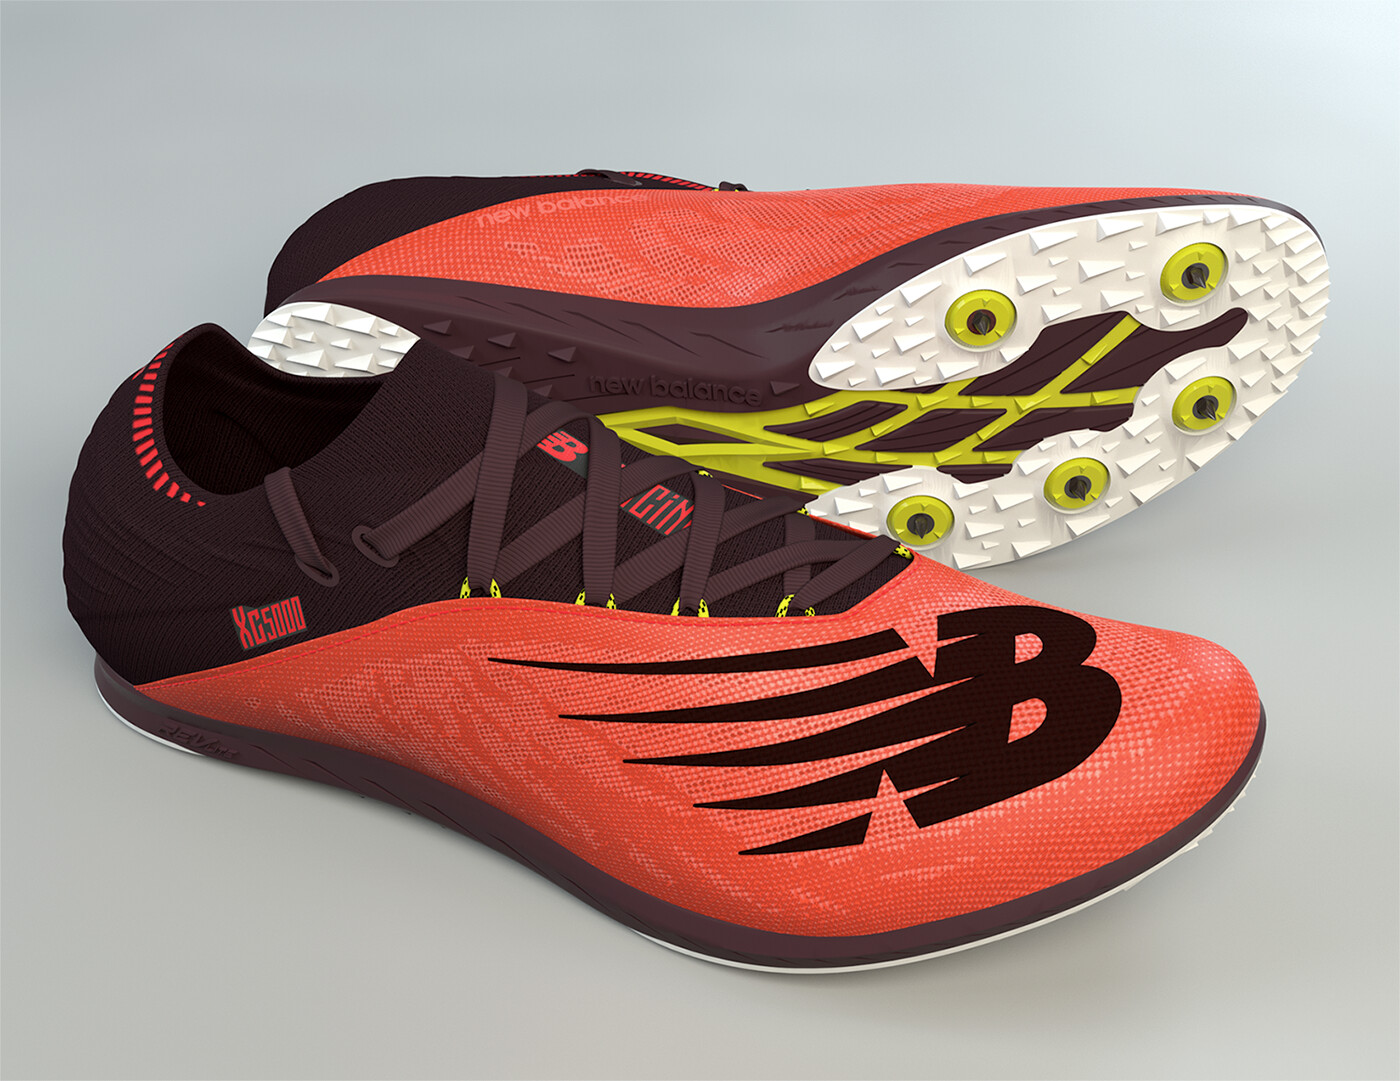 New Balance XC5Kv5 Shoe.  Made in Modo, is all quads and was rendered in Modo.  The tooling/sole is from a CAD file.